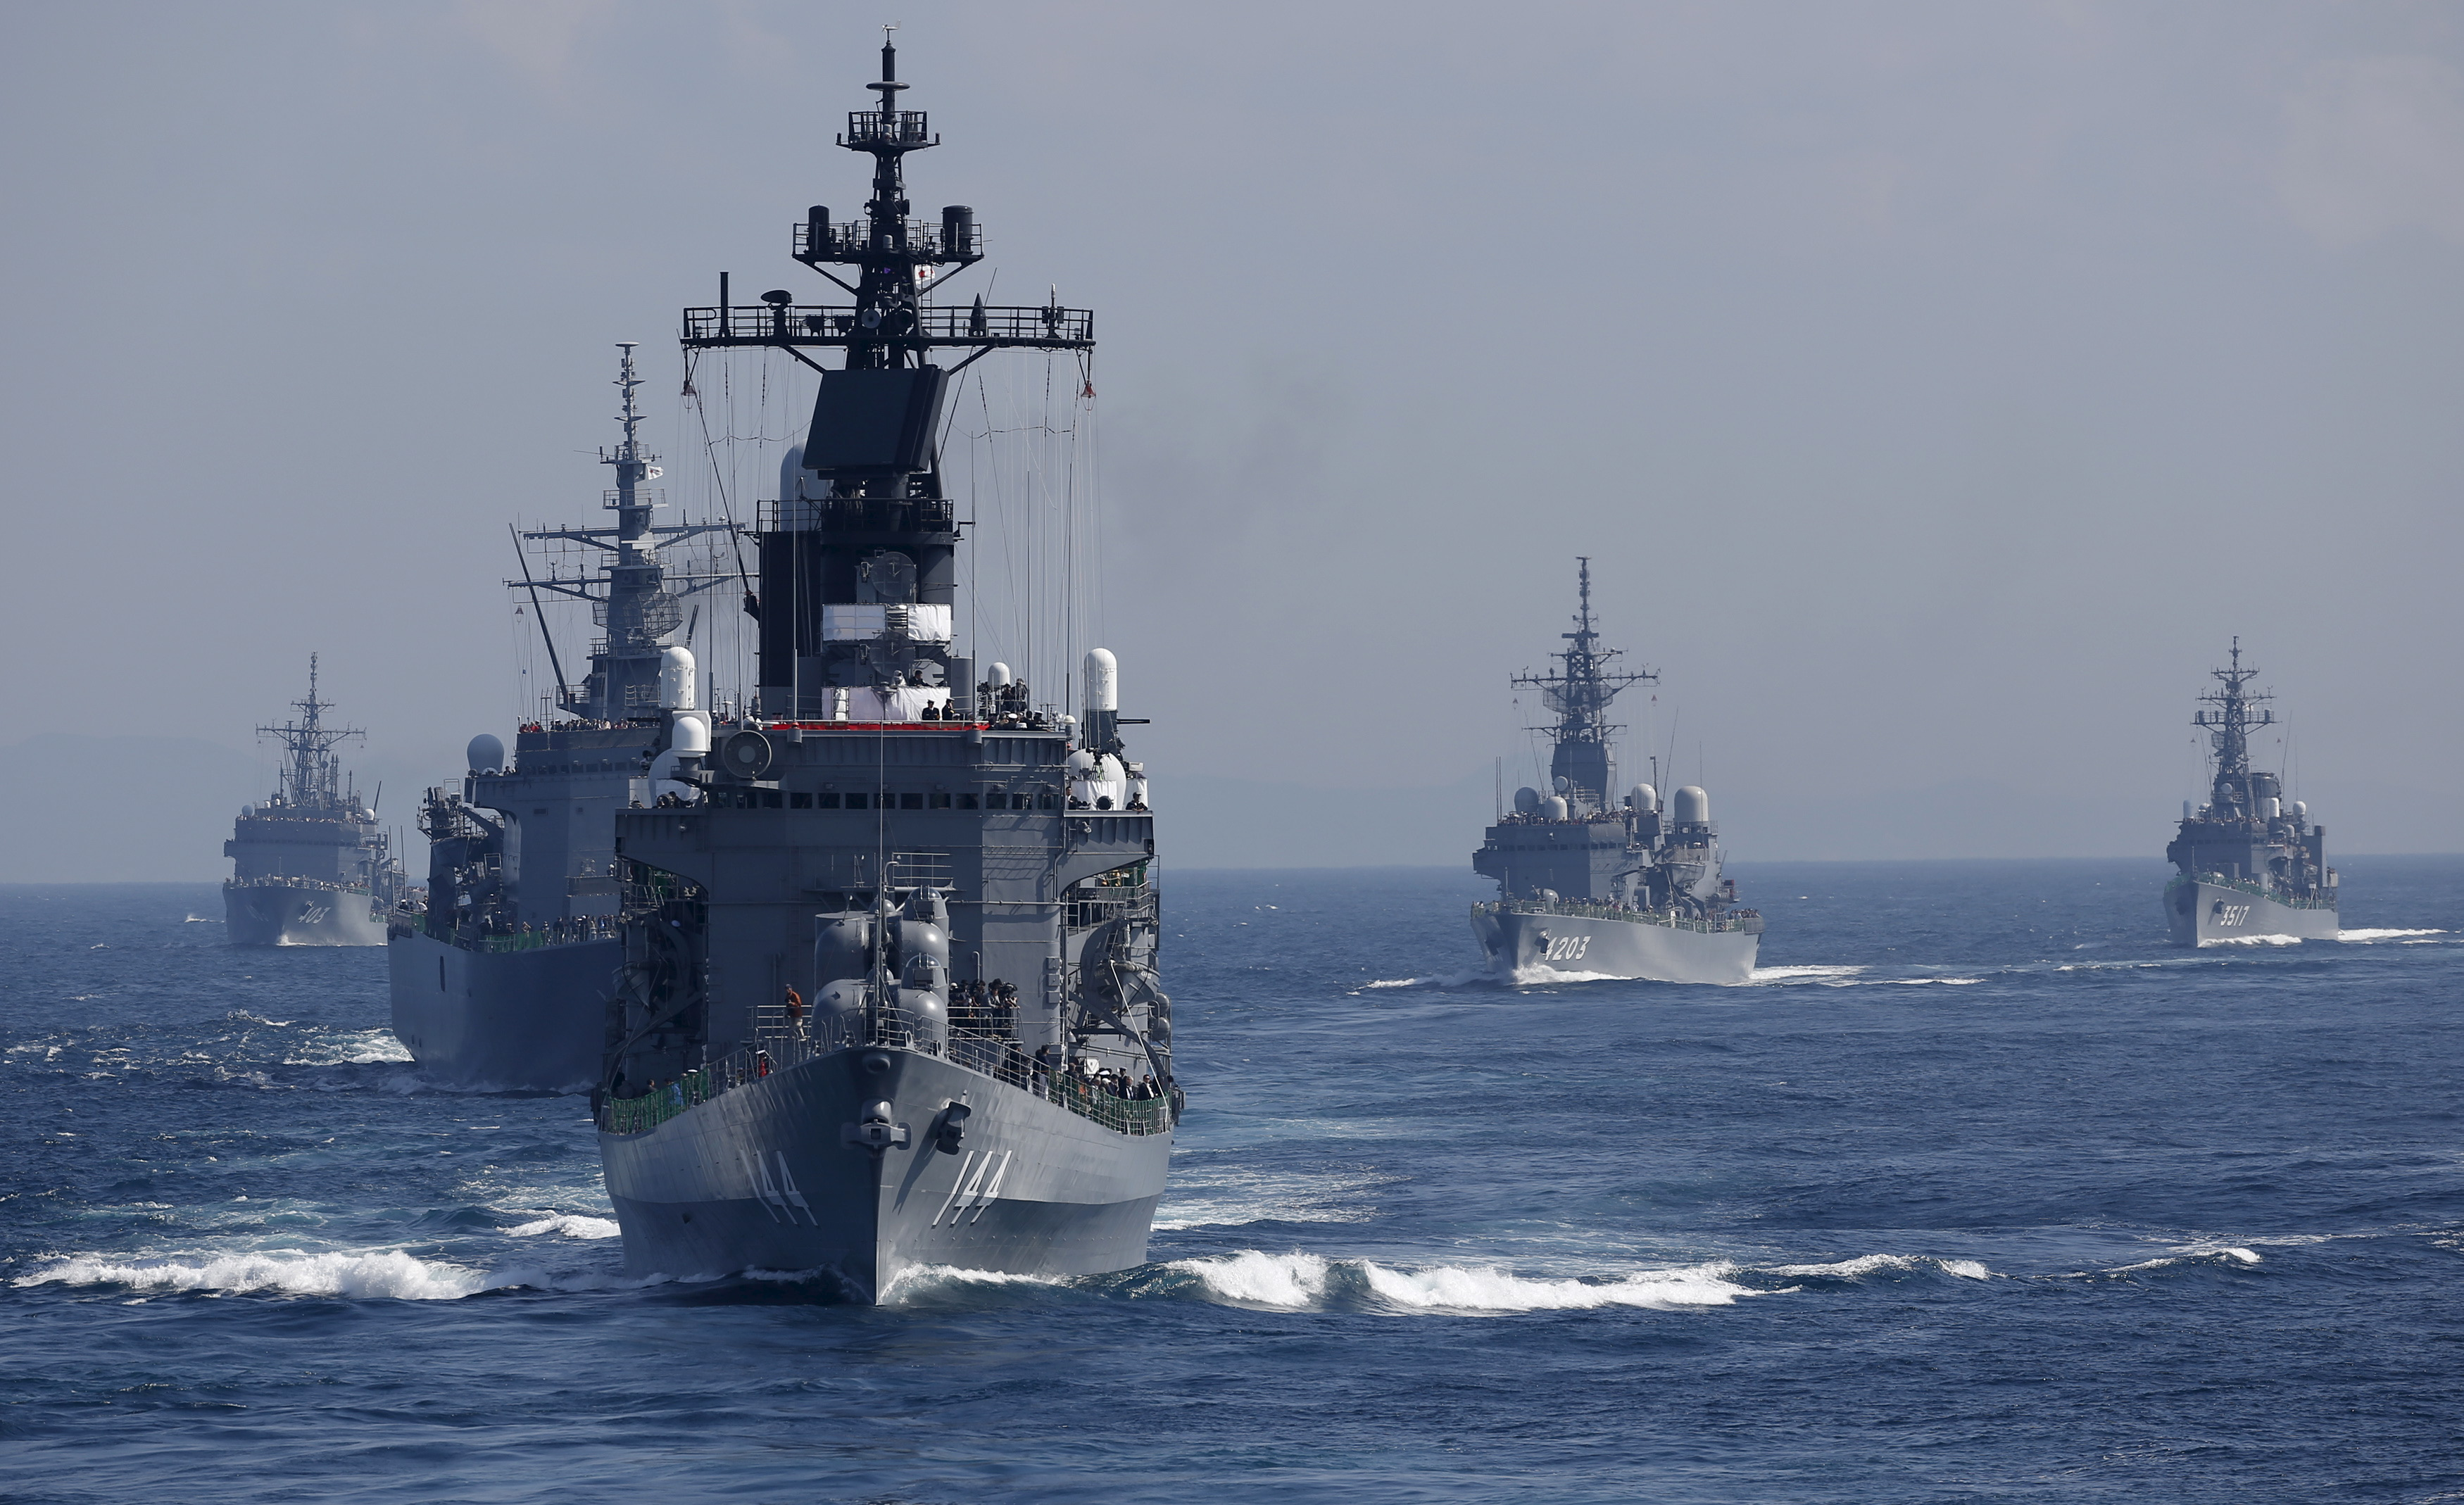 Japan's Maritime Self-Defense Force (JMSDF) destroyer Kurama (front), which is carrying Japan's Prime Minister Shinzo Abe, leads the MSDF fleet during its fleet review at Sagami Bay, off Yokosuka, south of Tokyo October 18, 2015.